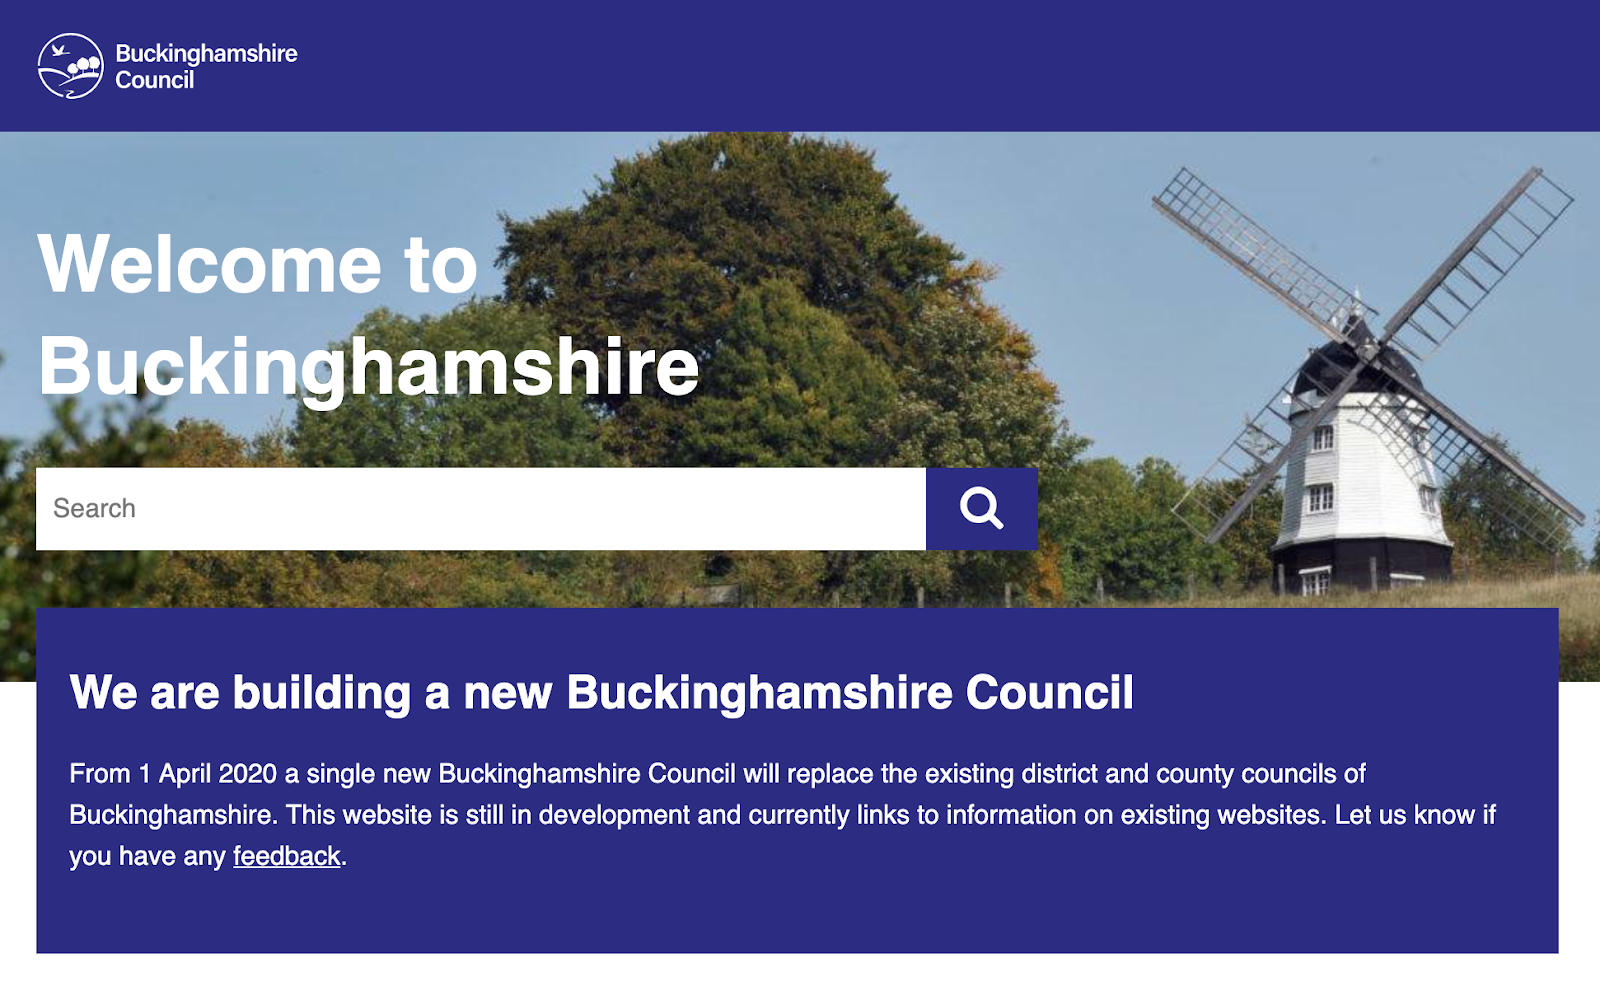 The new Buckinghamshire Council website homepage